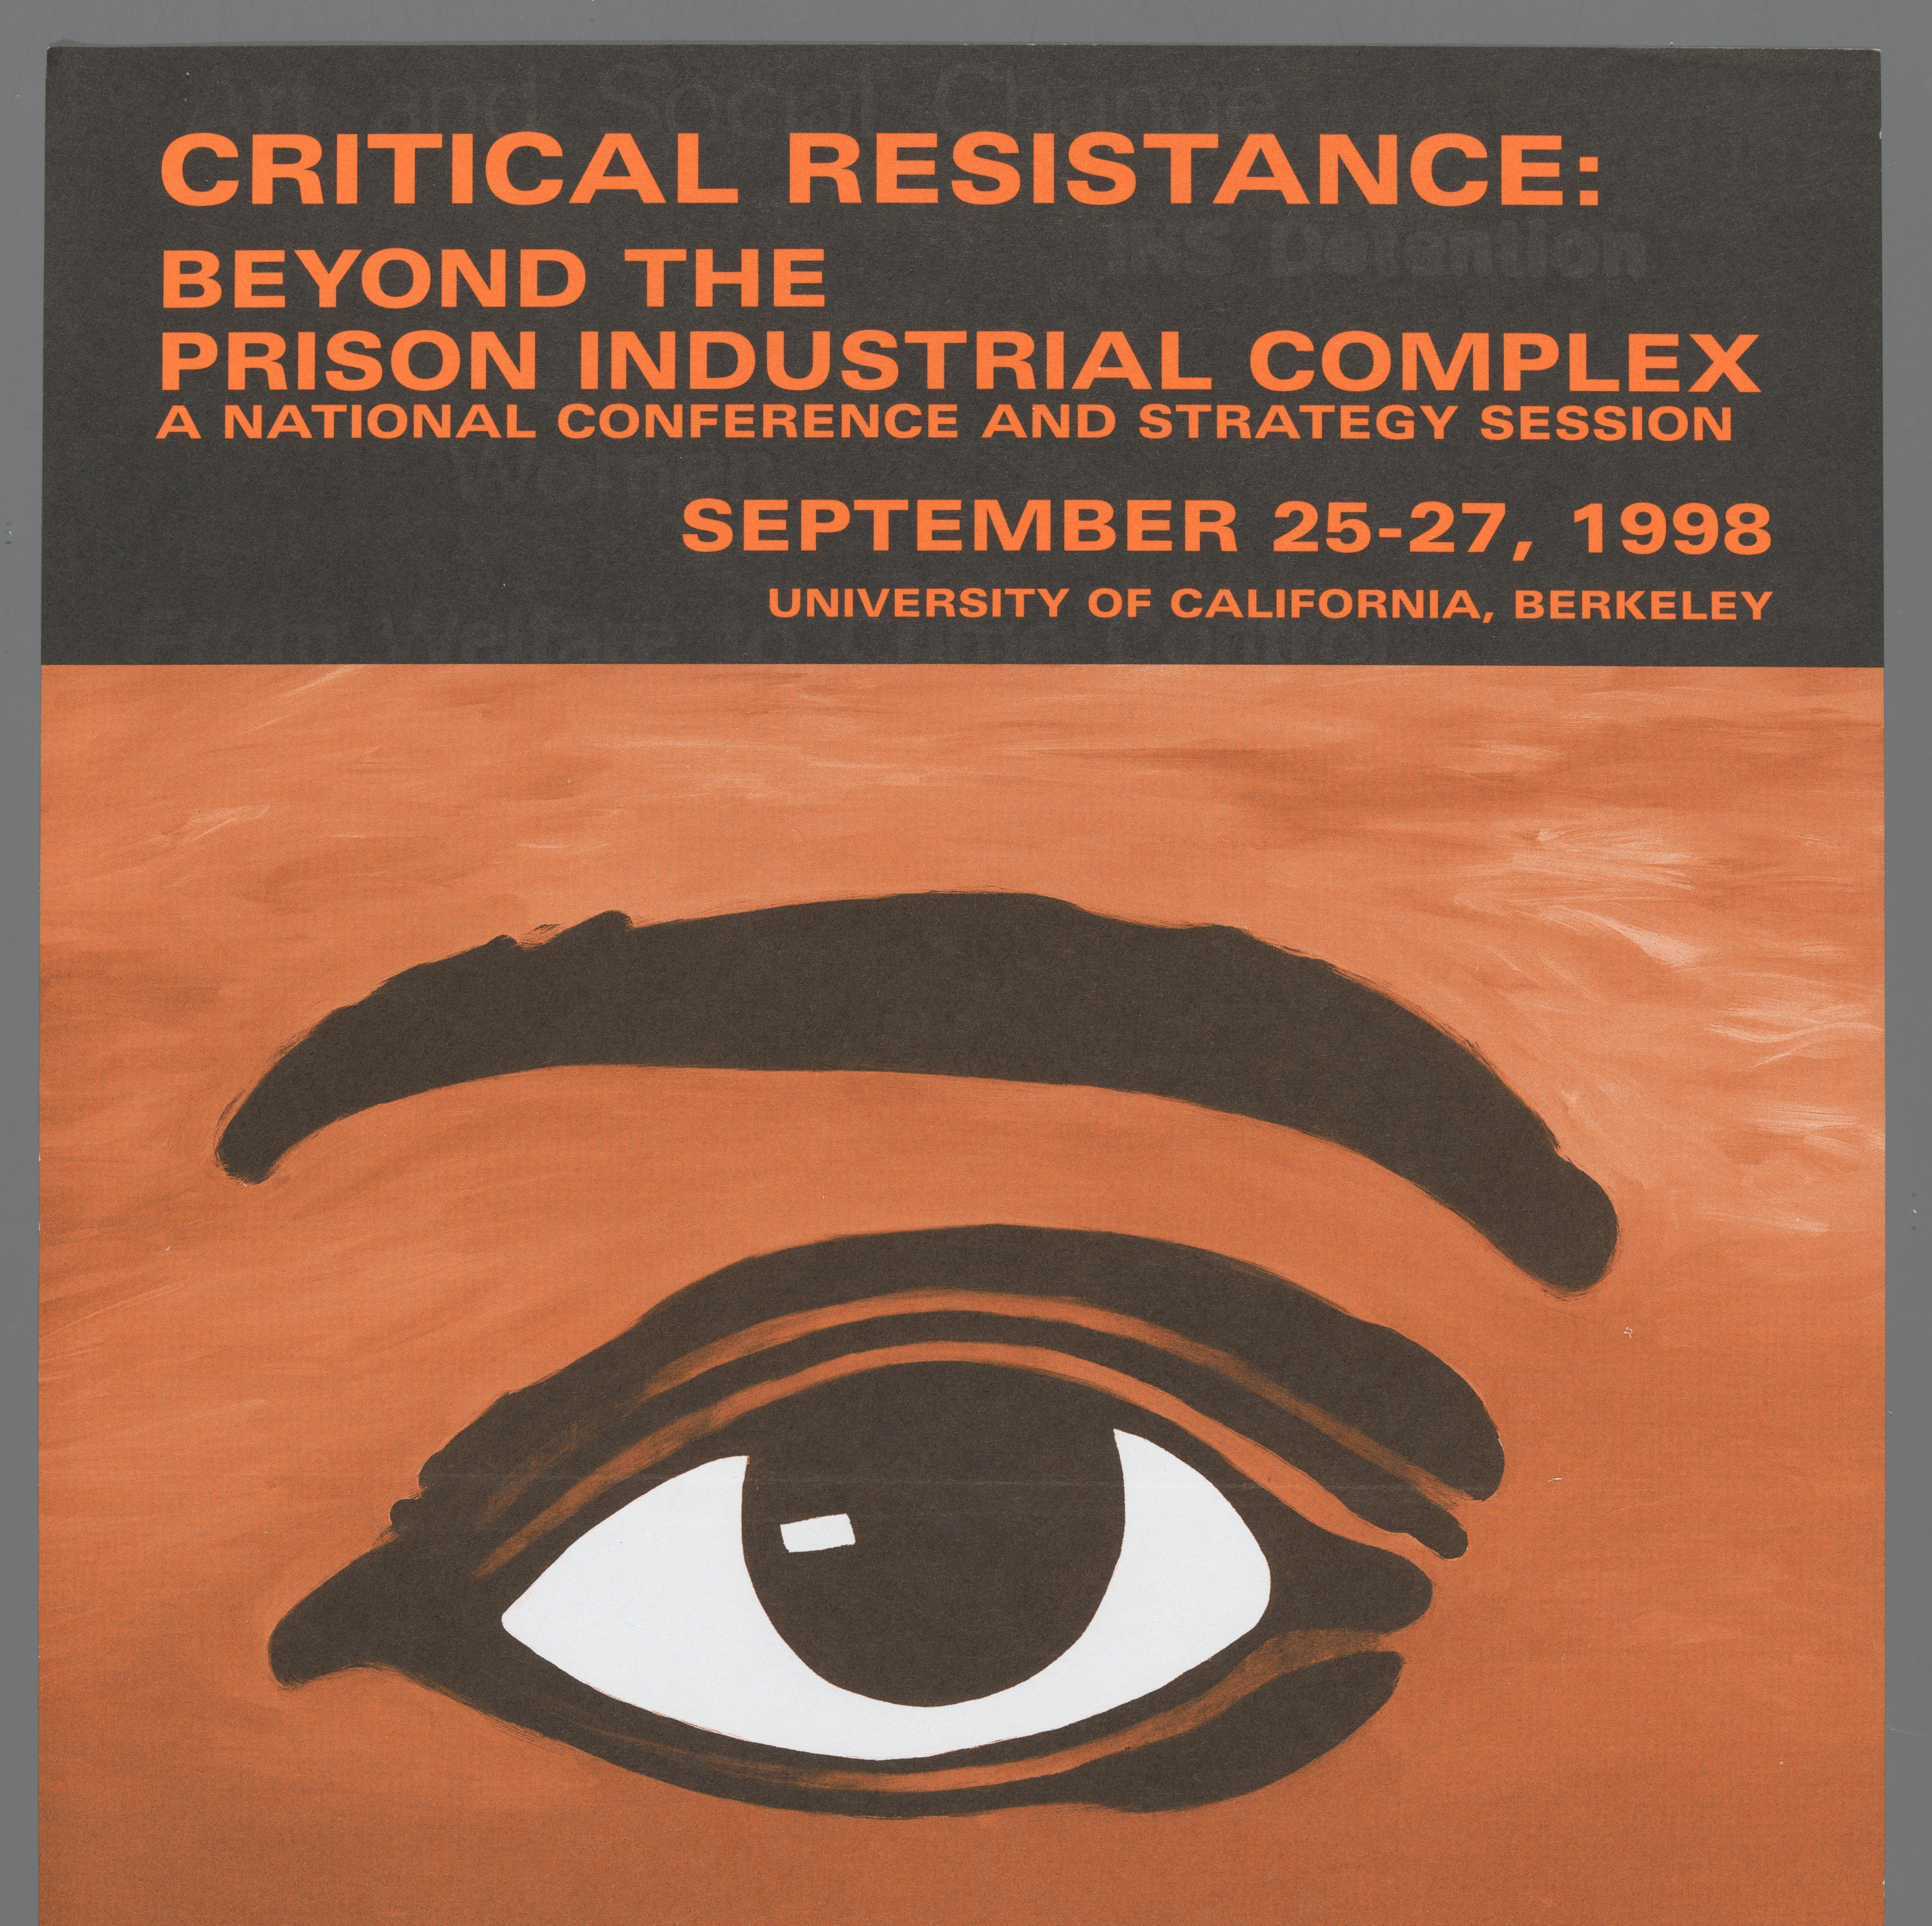 Critical Resistance Poster with image of singular eyeball and eyebrow. Background is in a burnt orange color.